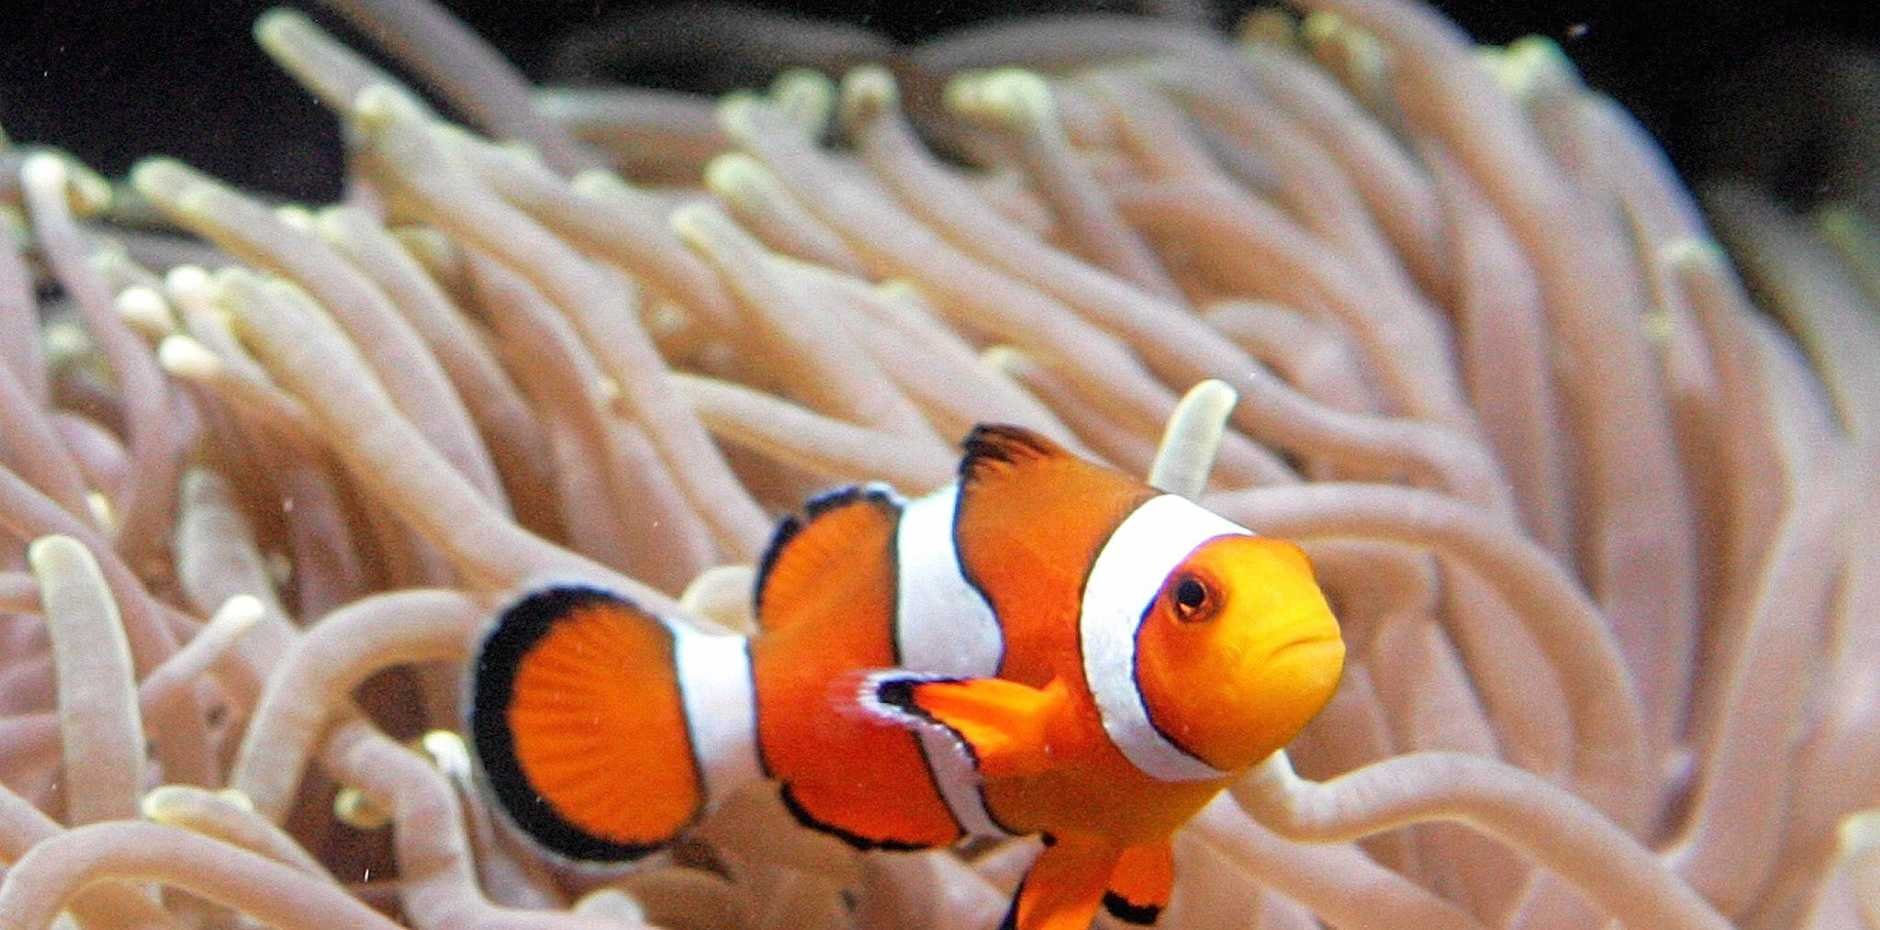 BREEDING CENTRE: Clown fish lovers will be able to get their own Nemo later this year at Boyne environment centre.